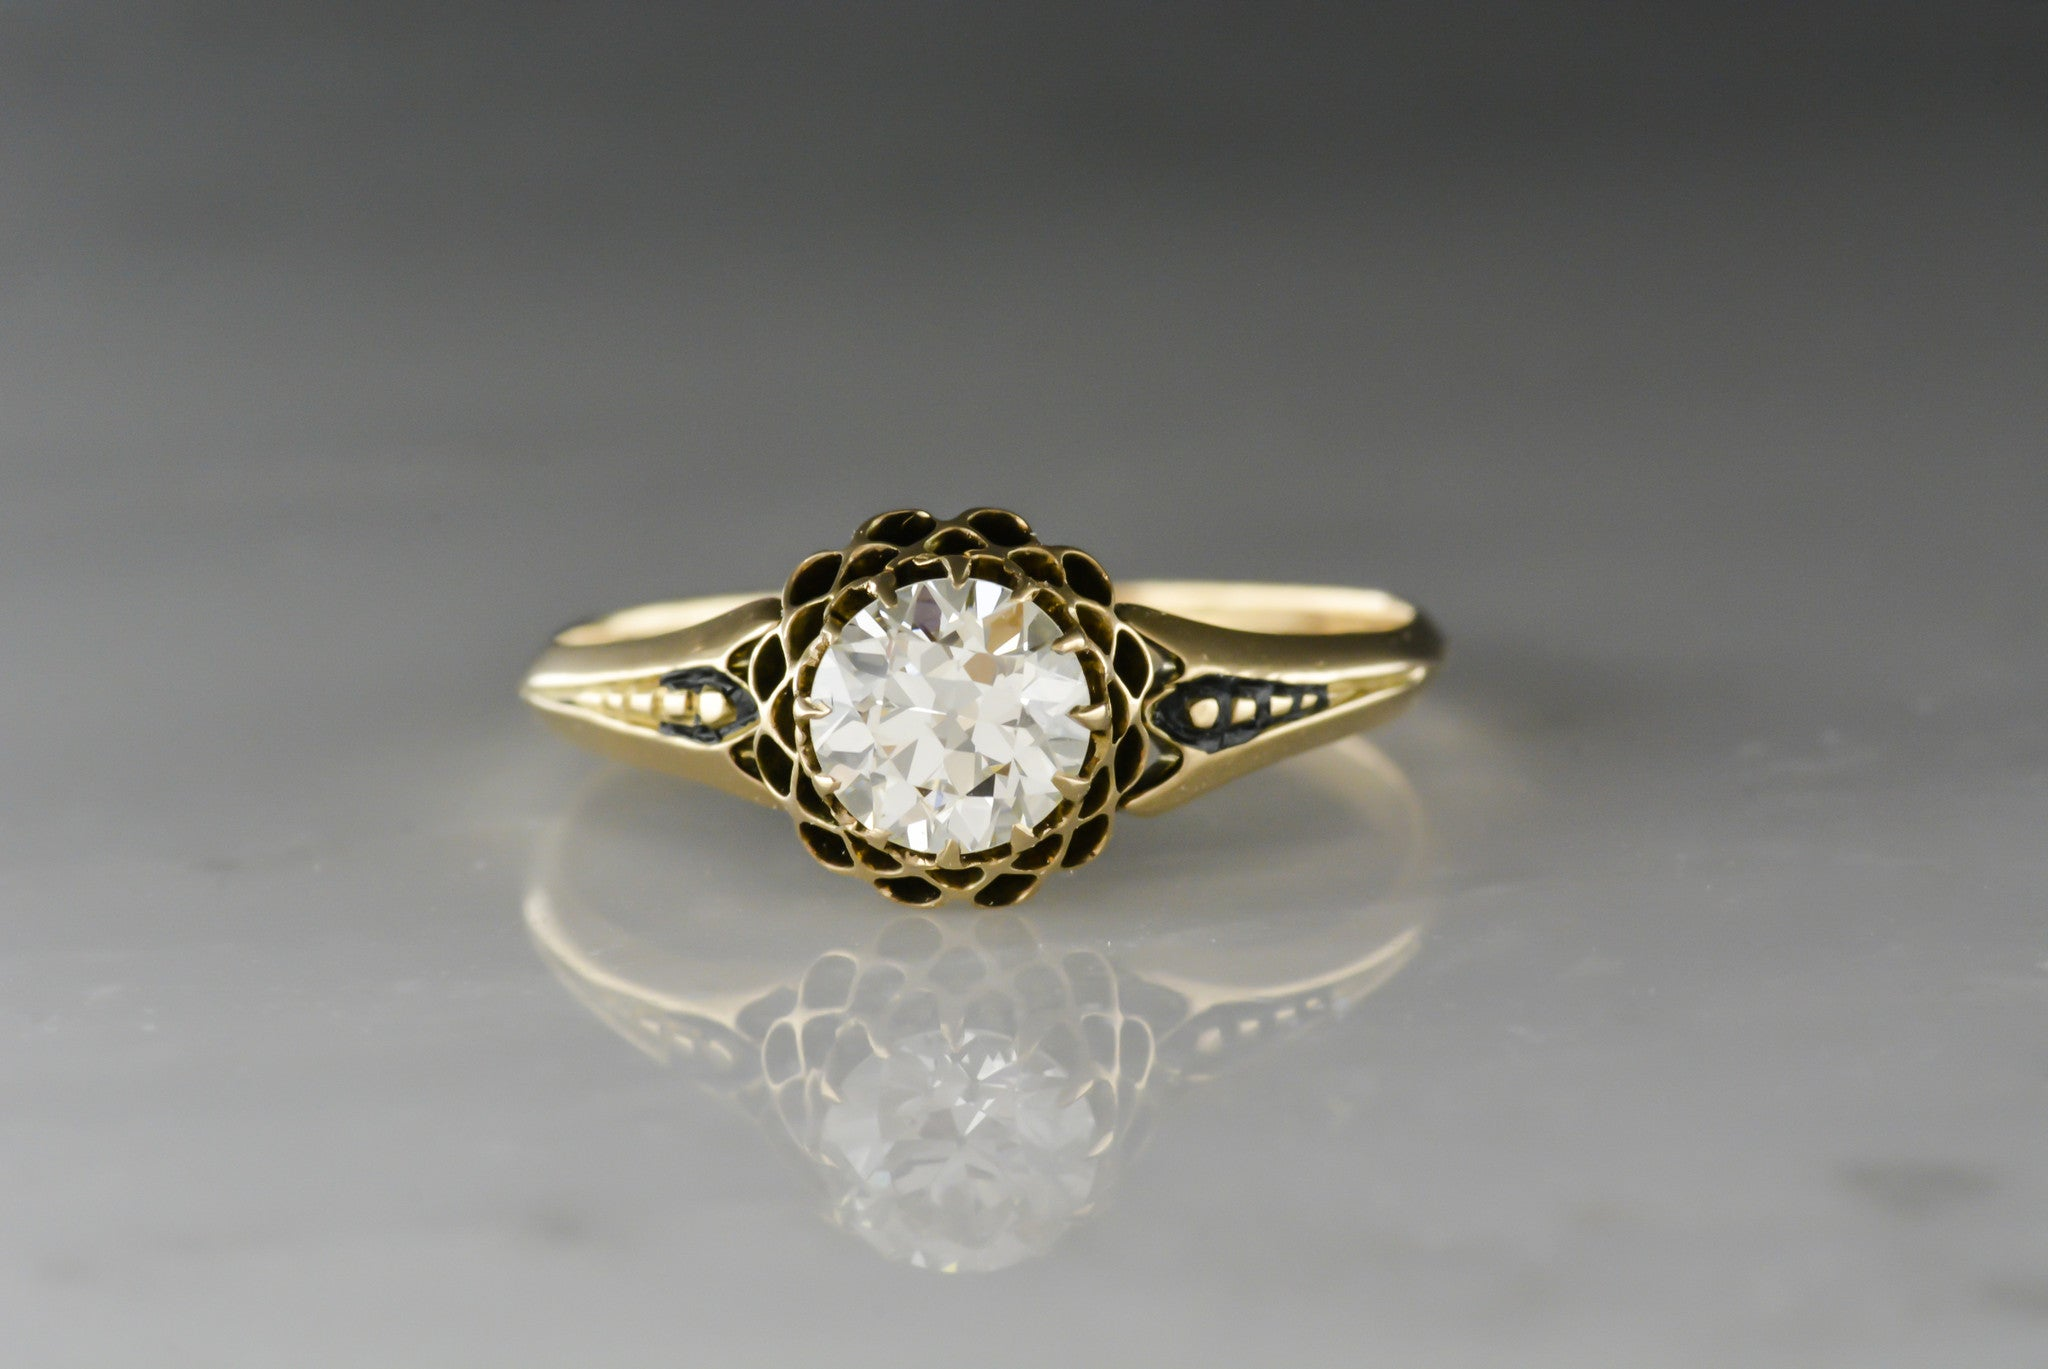 jewelers jewelry period an crane engagement jewelery the at georgian seattle of antique rings ring ltd restoration